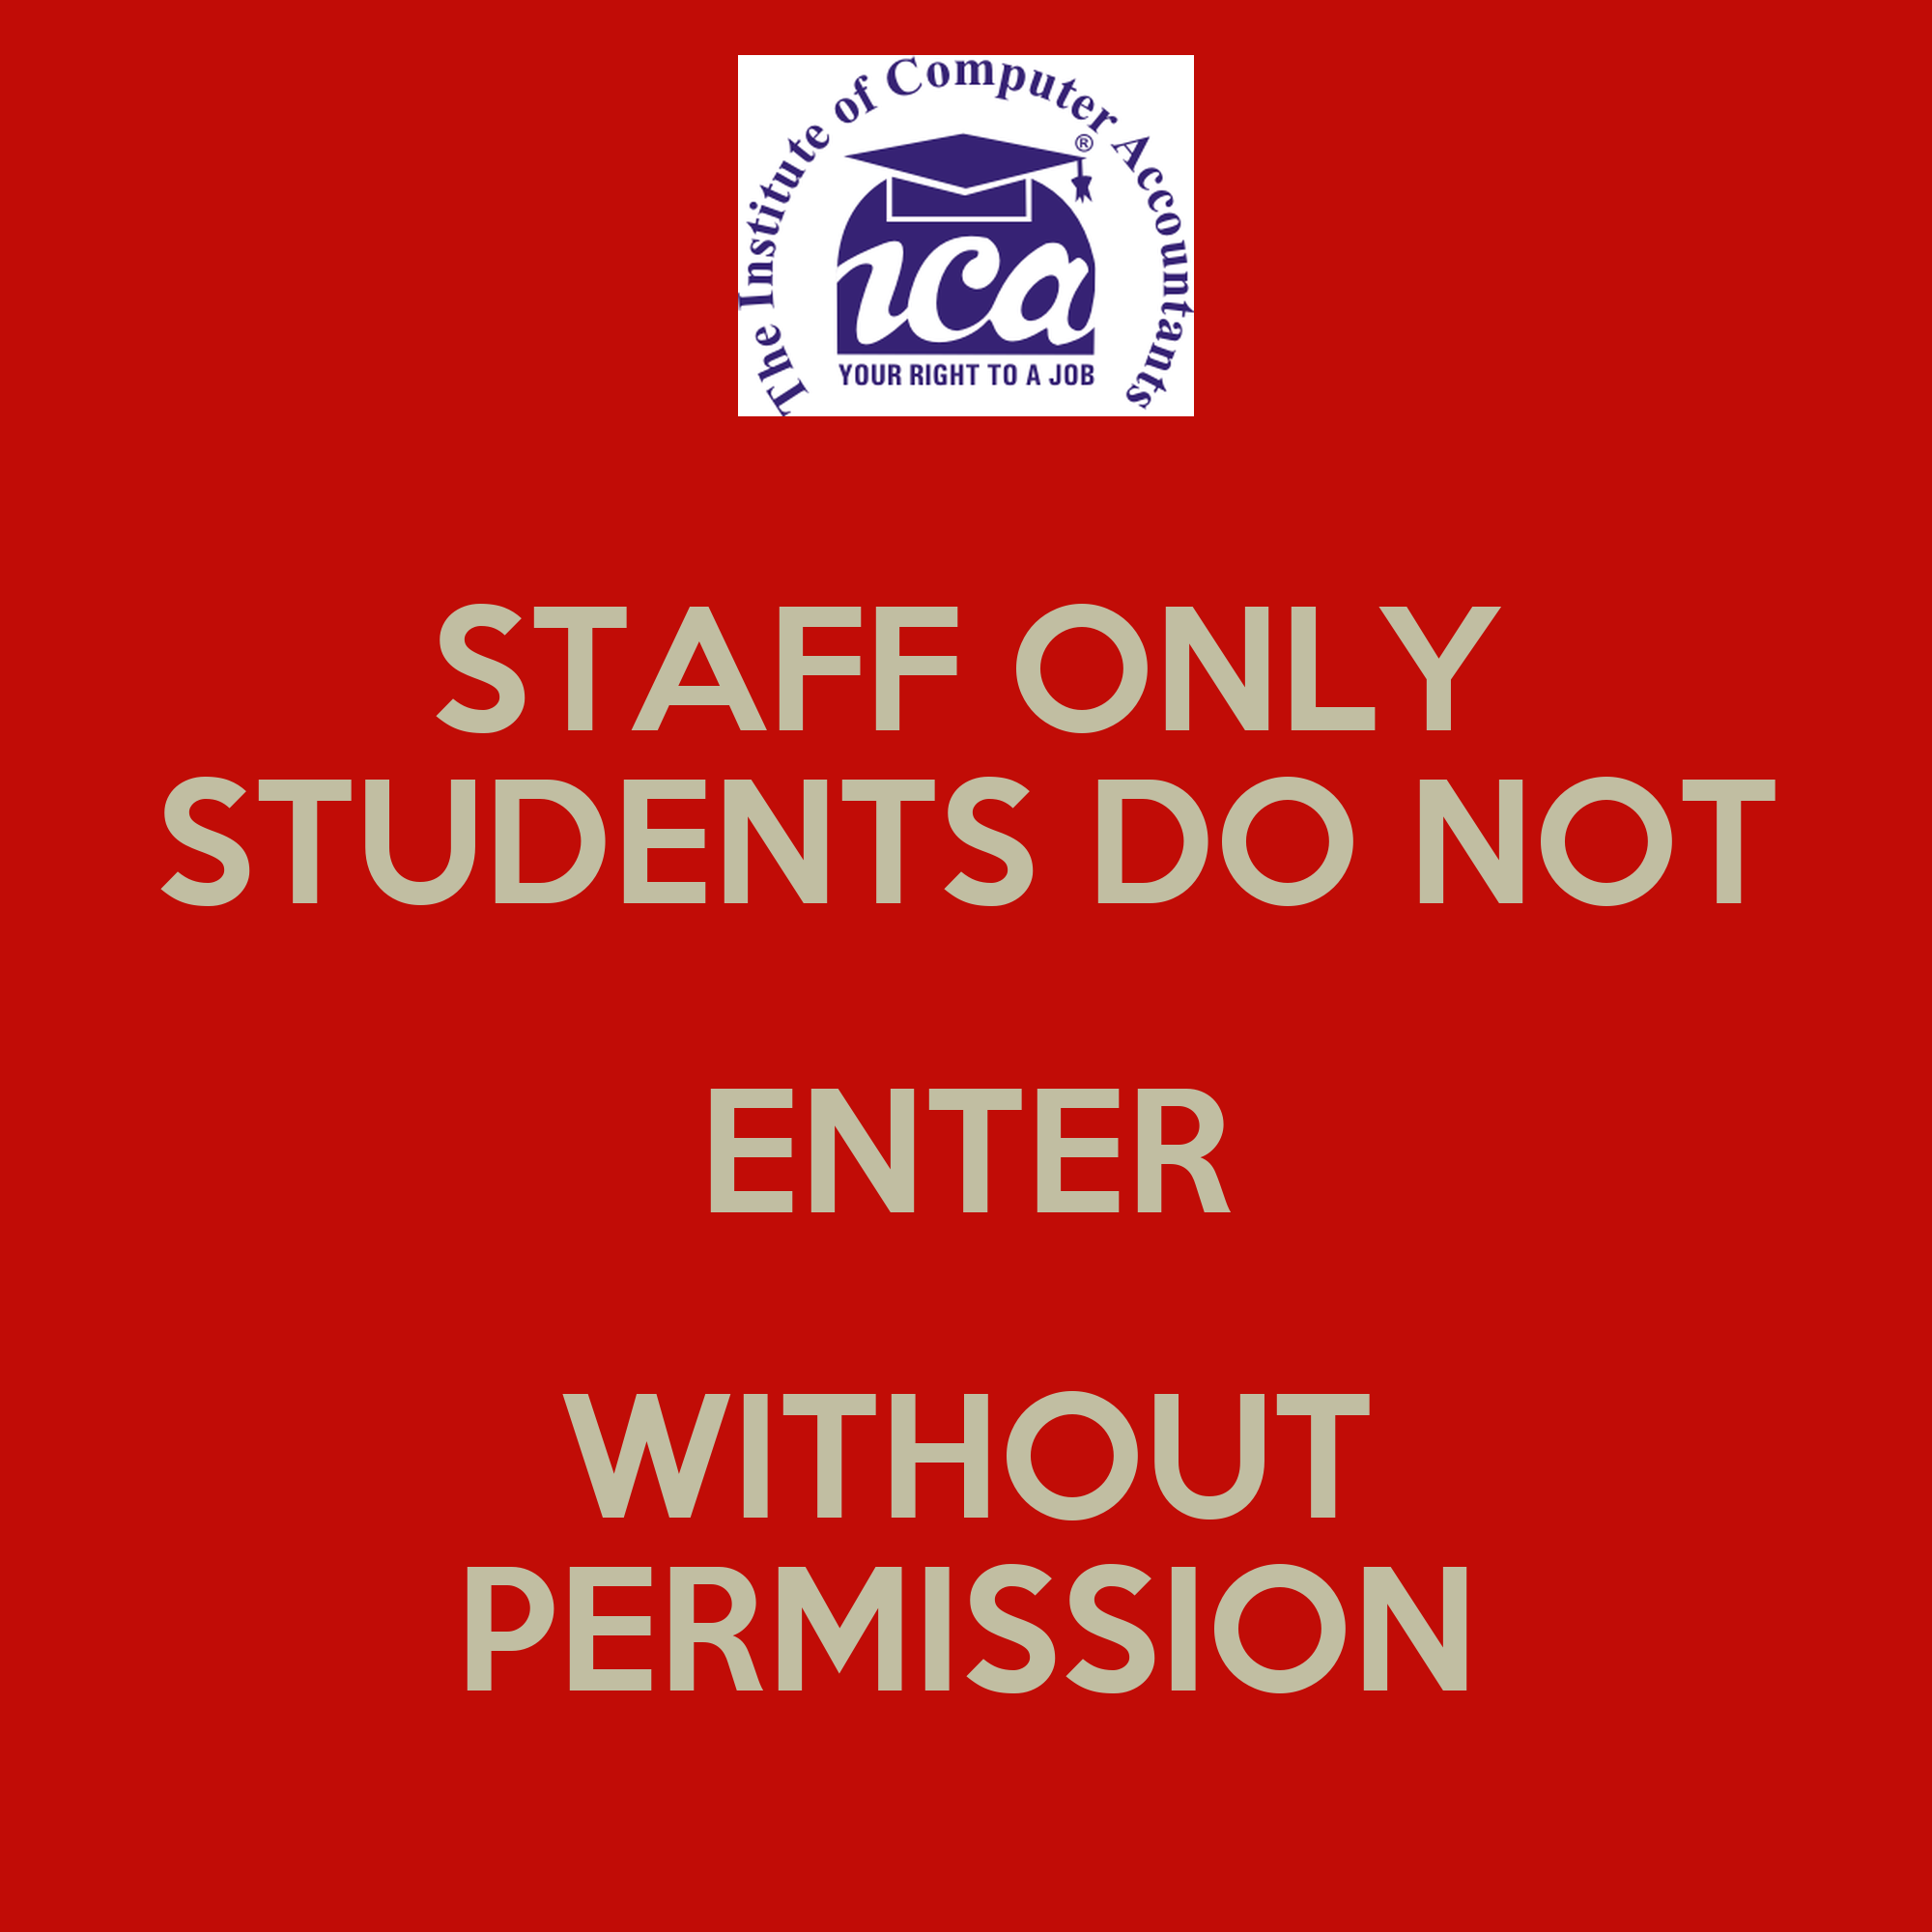 STAFF ONLY STUDENTS DO NOT ENTER WITHOUT PERMISSION Poster ...